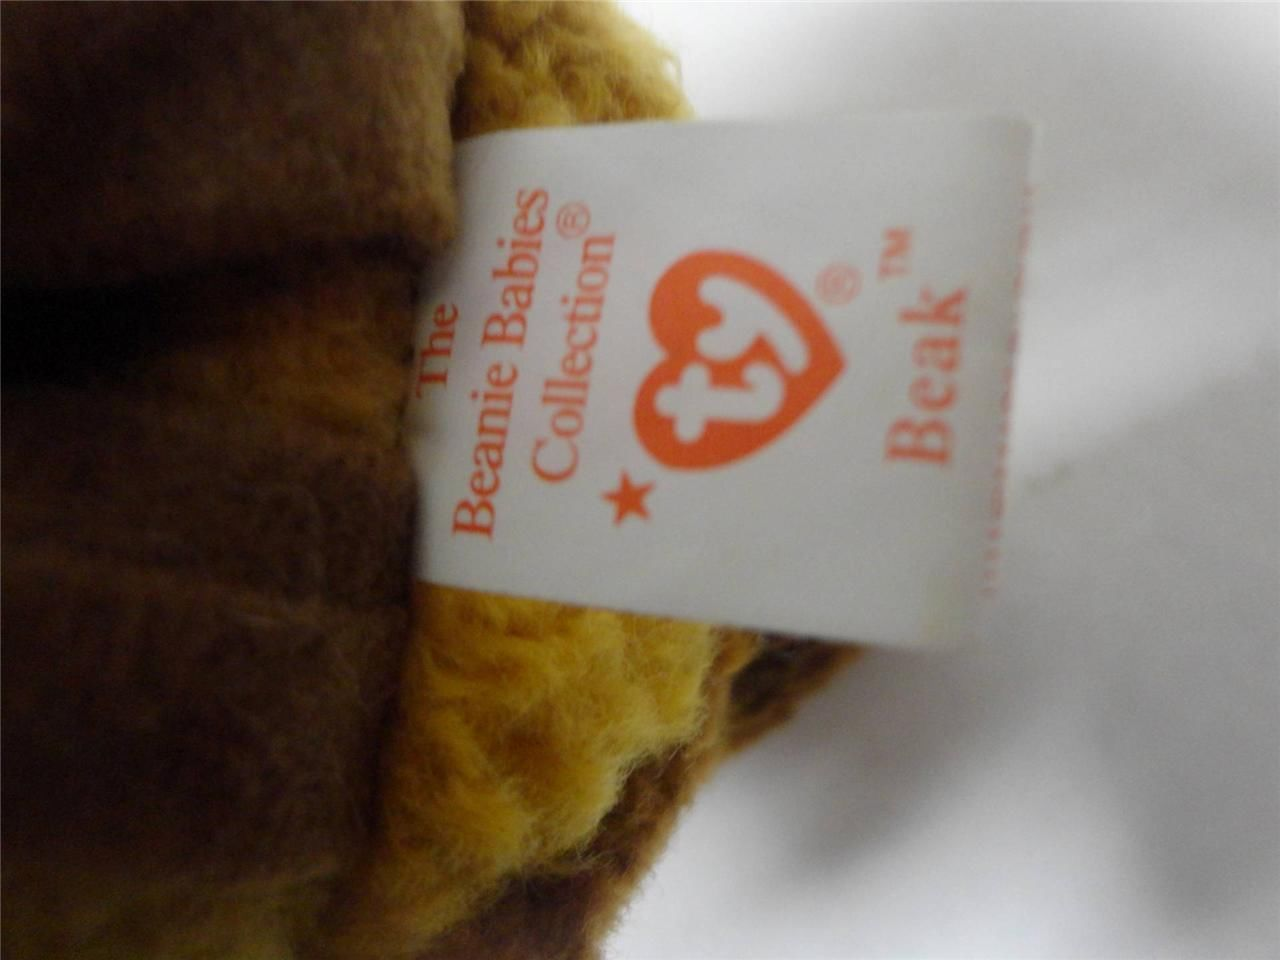 TY Beanie Babies Gobbles 1996 Beak 1998 and Gracie 1996 Mint with Tags Lot of 3